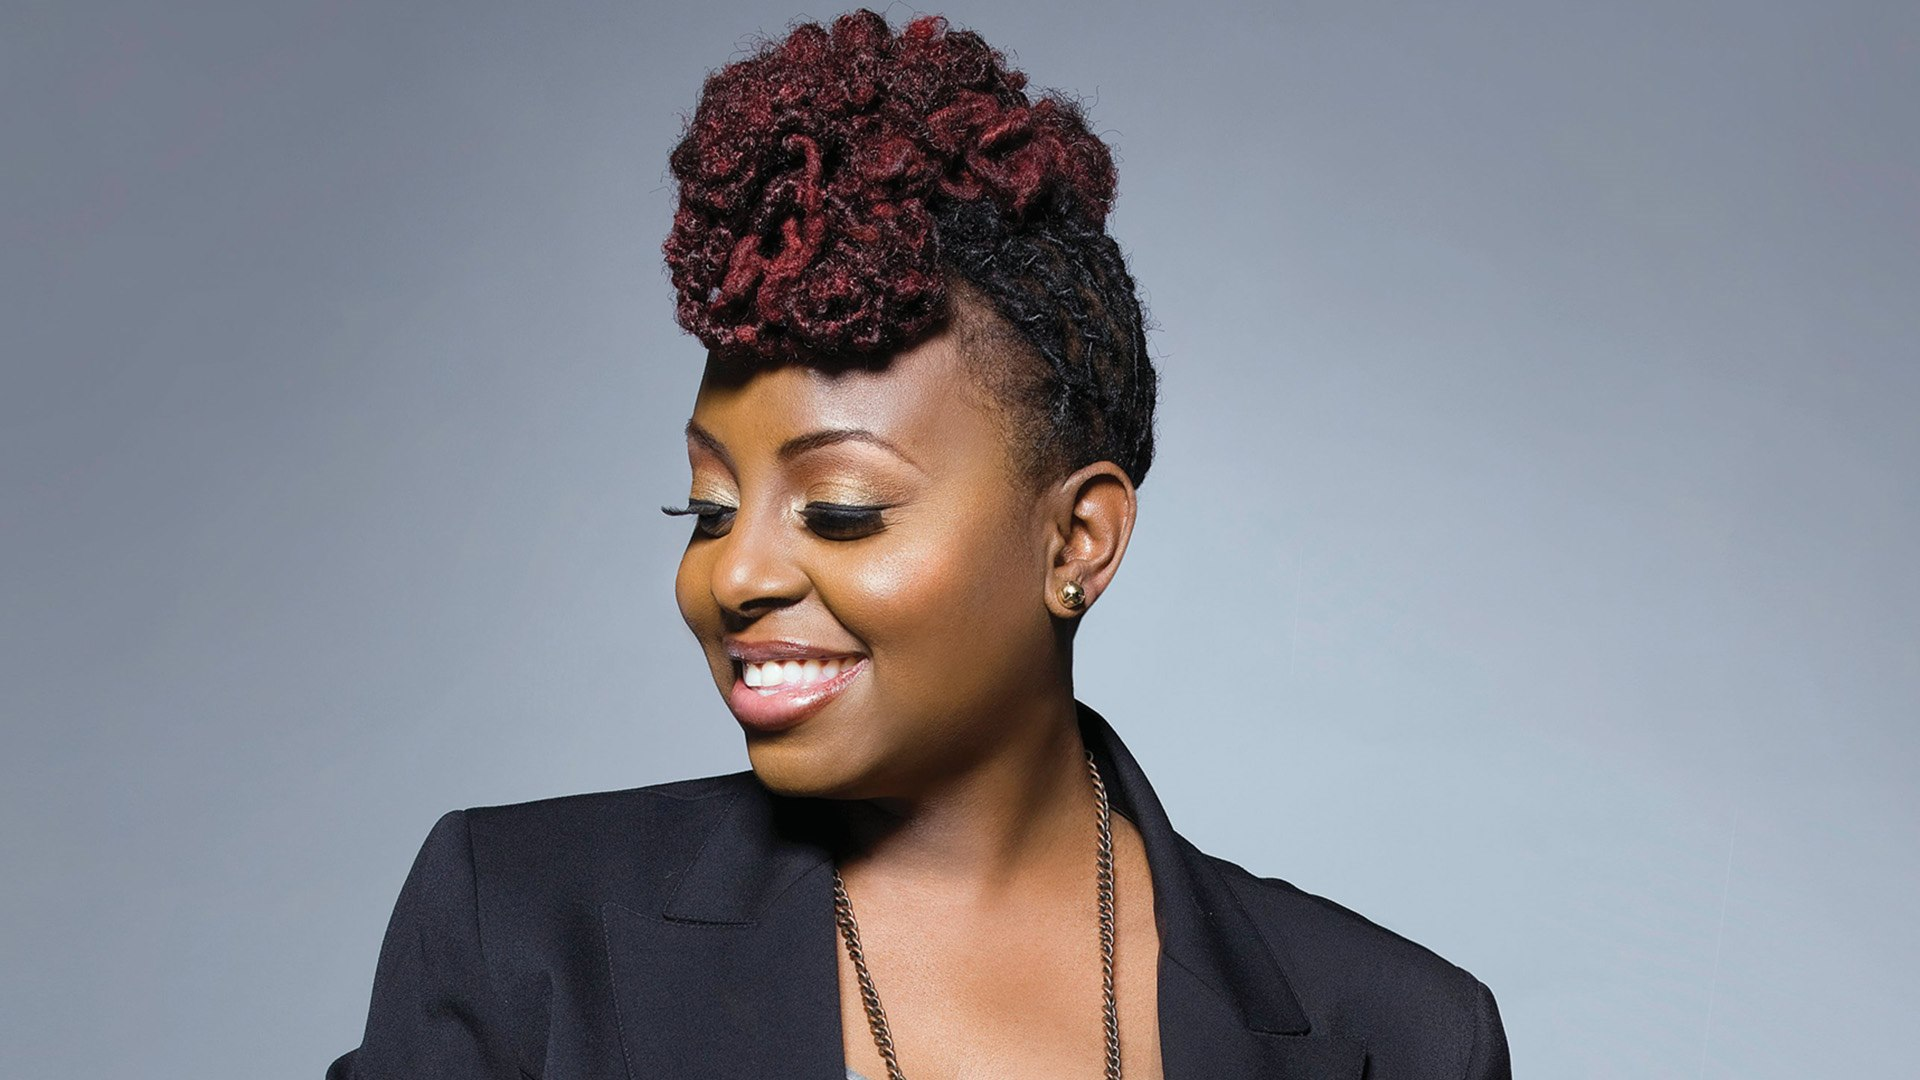 Ledisi as Mahalia Jackson